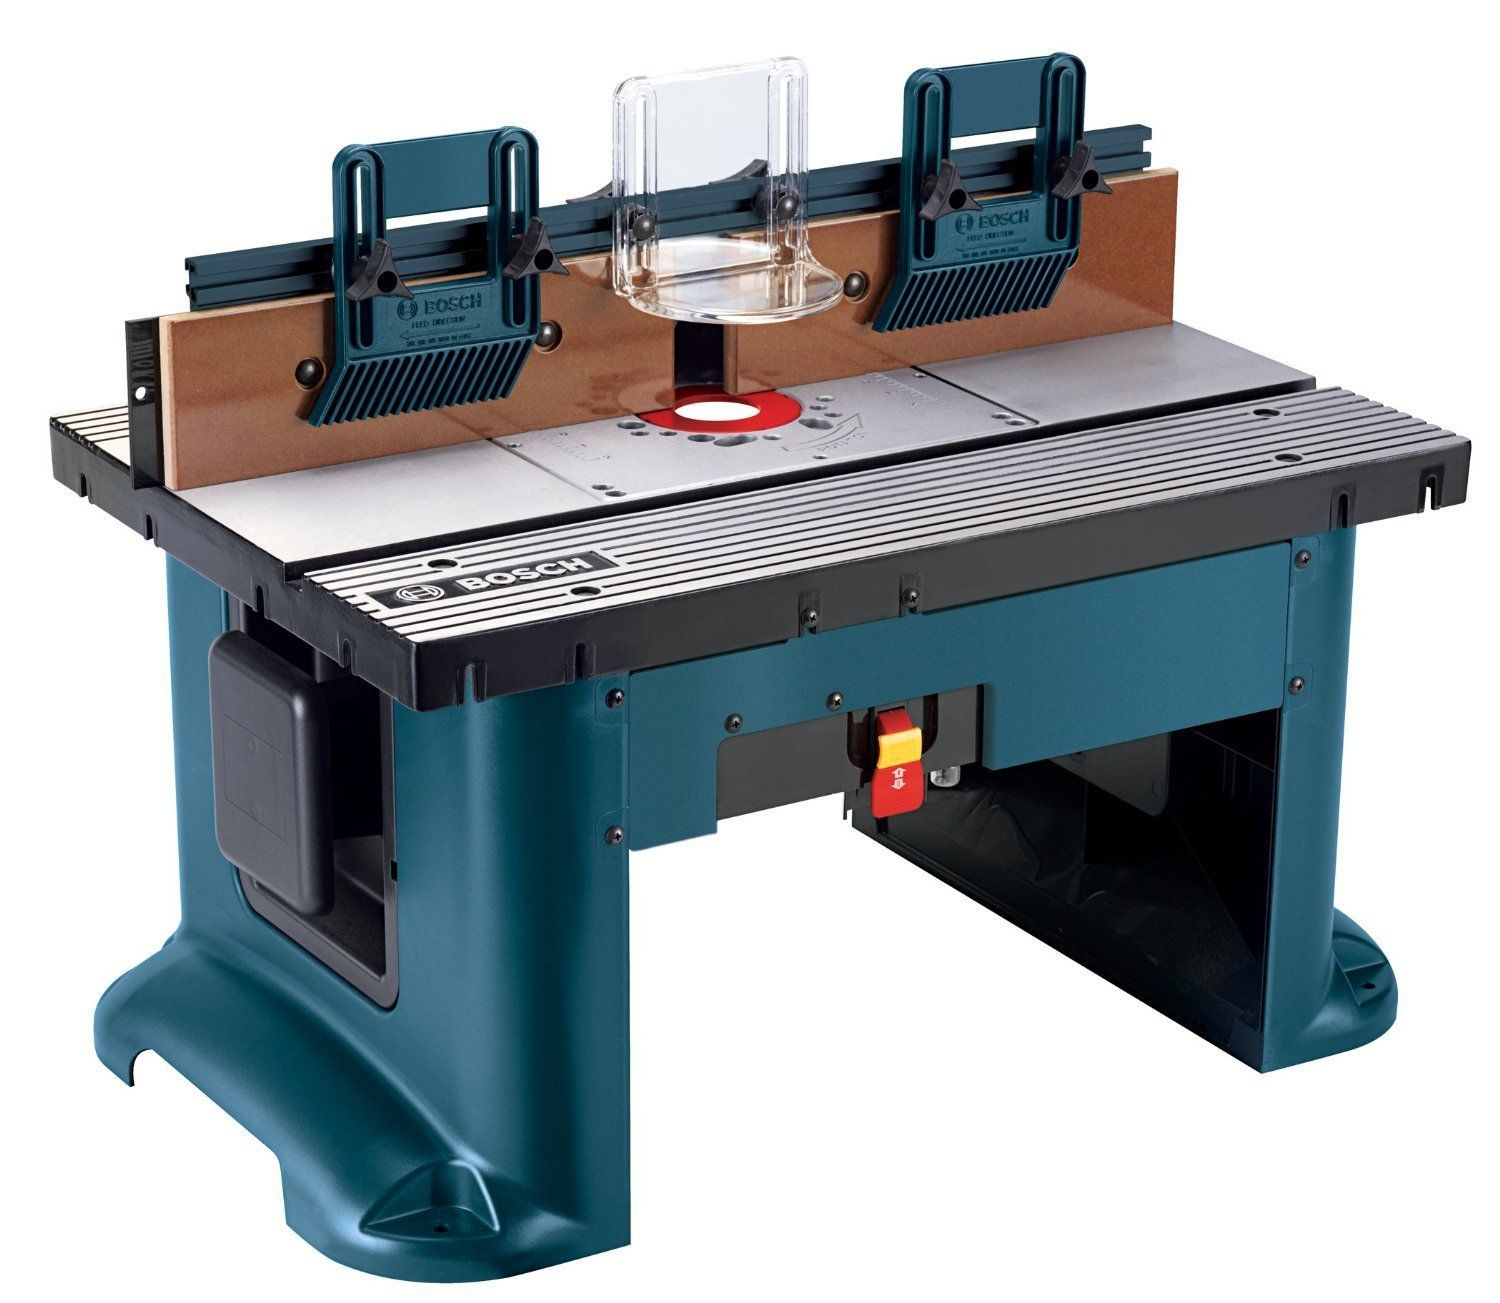 Bosch Benchtop Router Table Precision Woodworking Shop ...  Wood Router Table